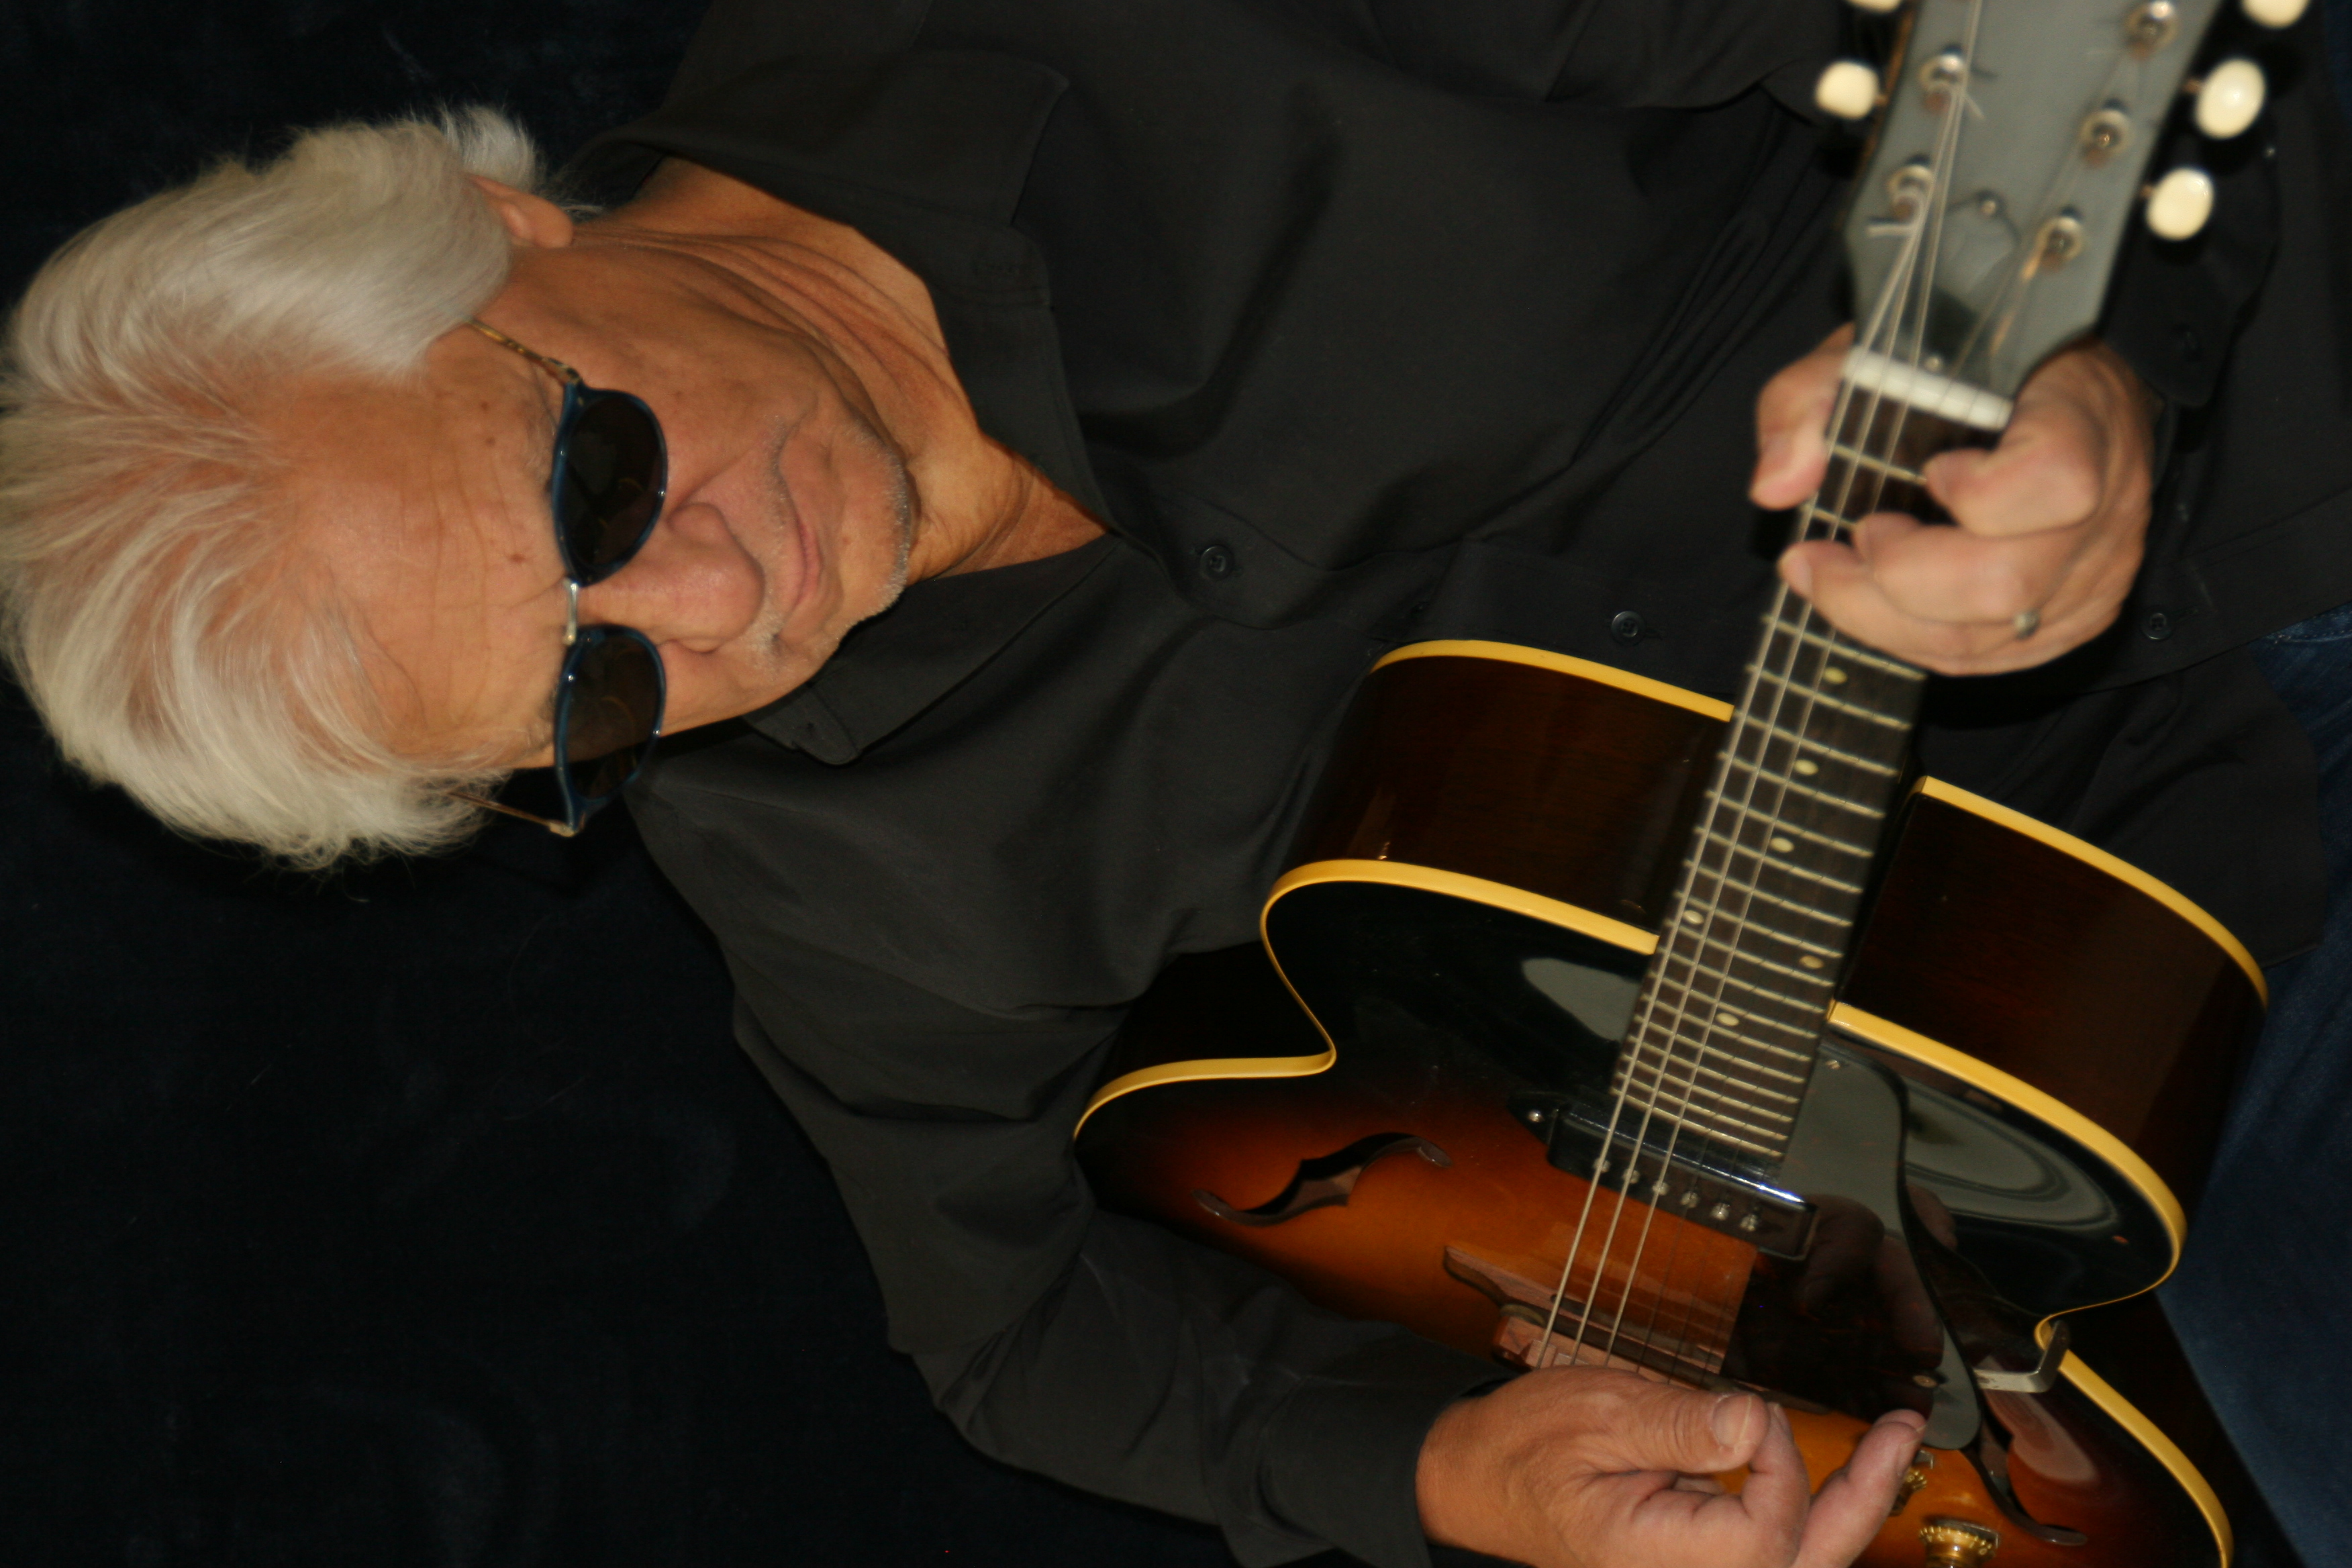 Interview with Singer-Songwriter Jim Scaparotti